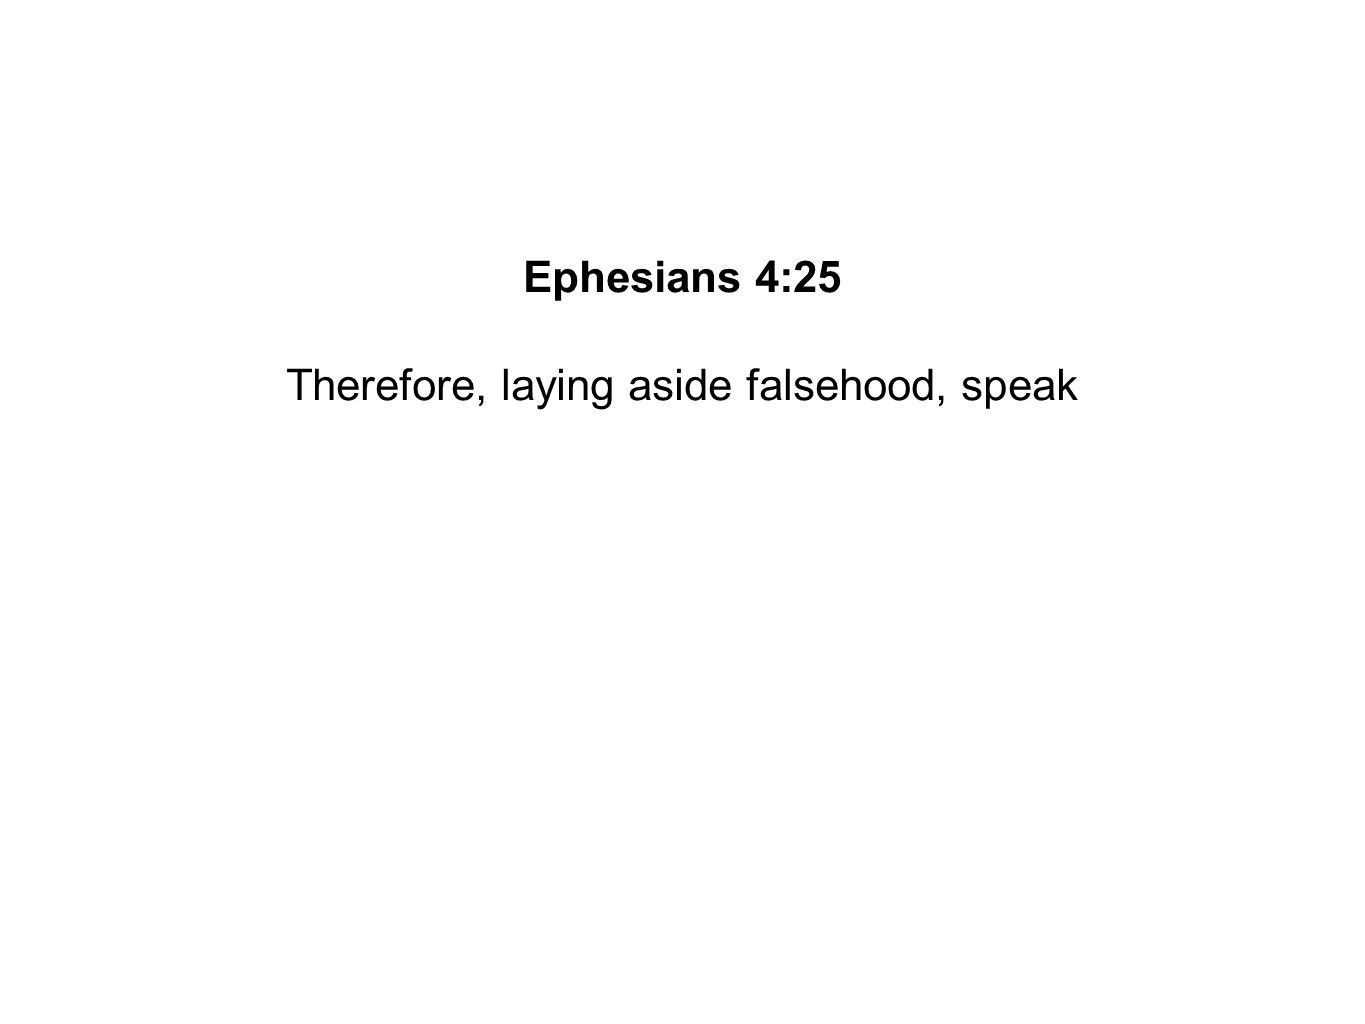 Therefore, laying aside falsehood, speak